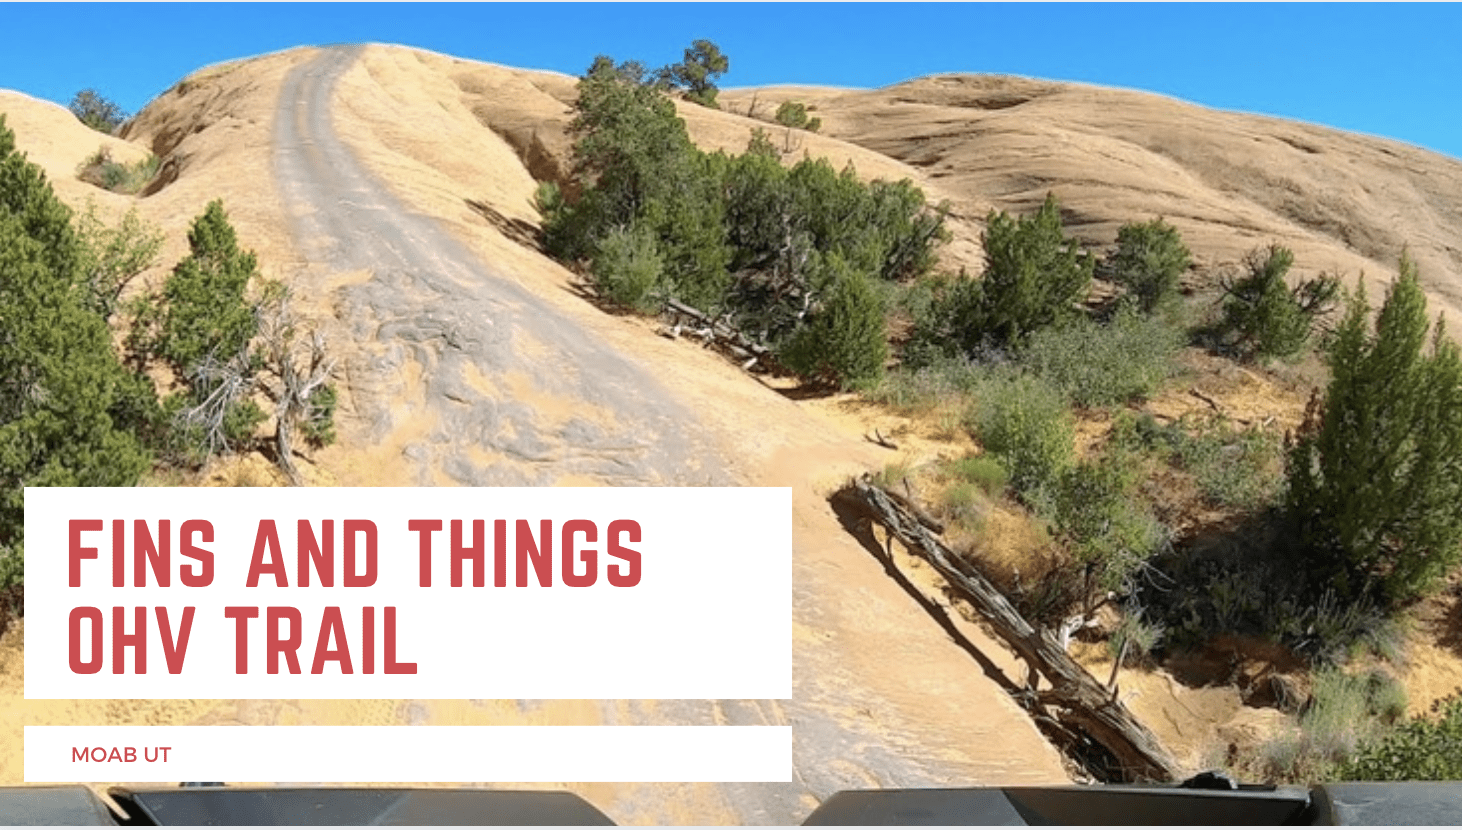 Fins and Things OHV Trails